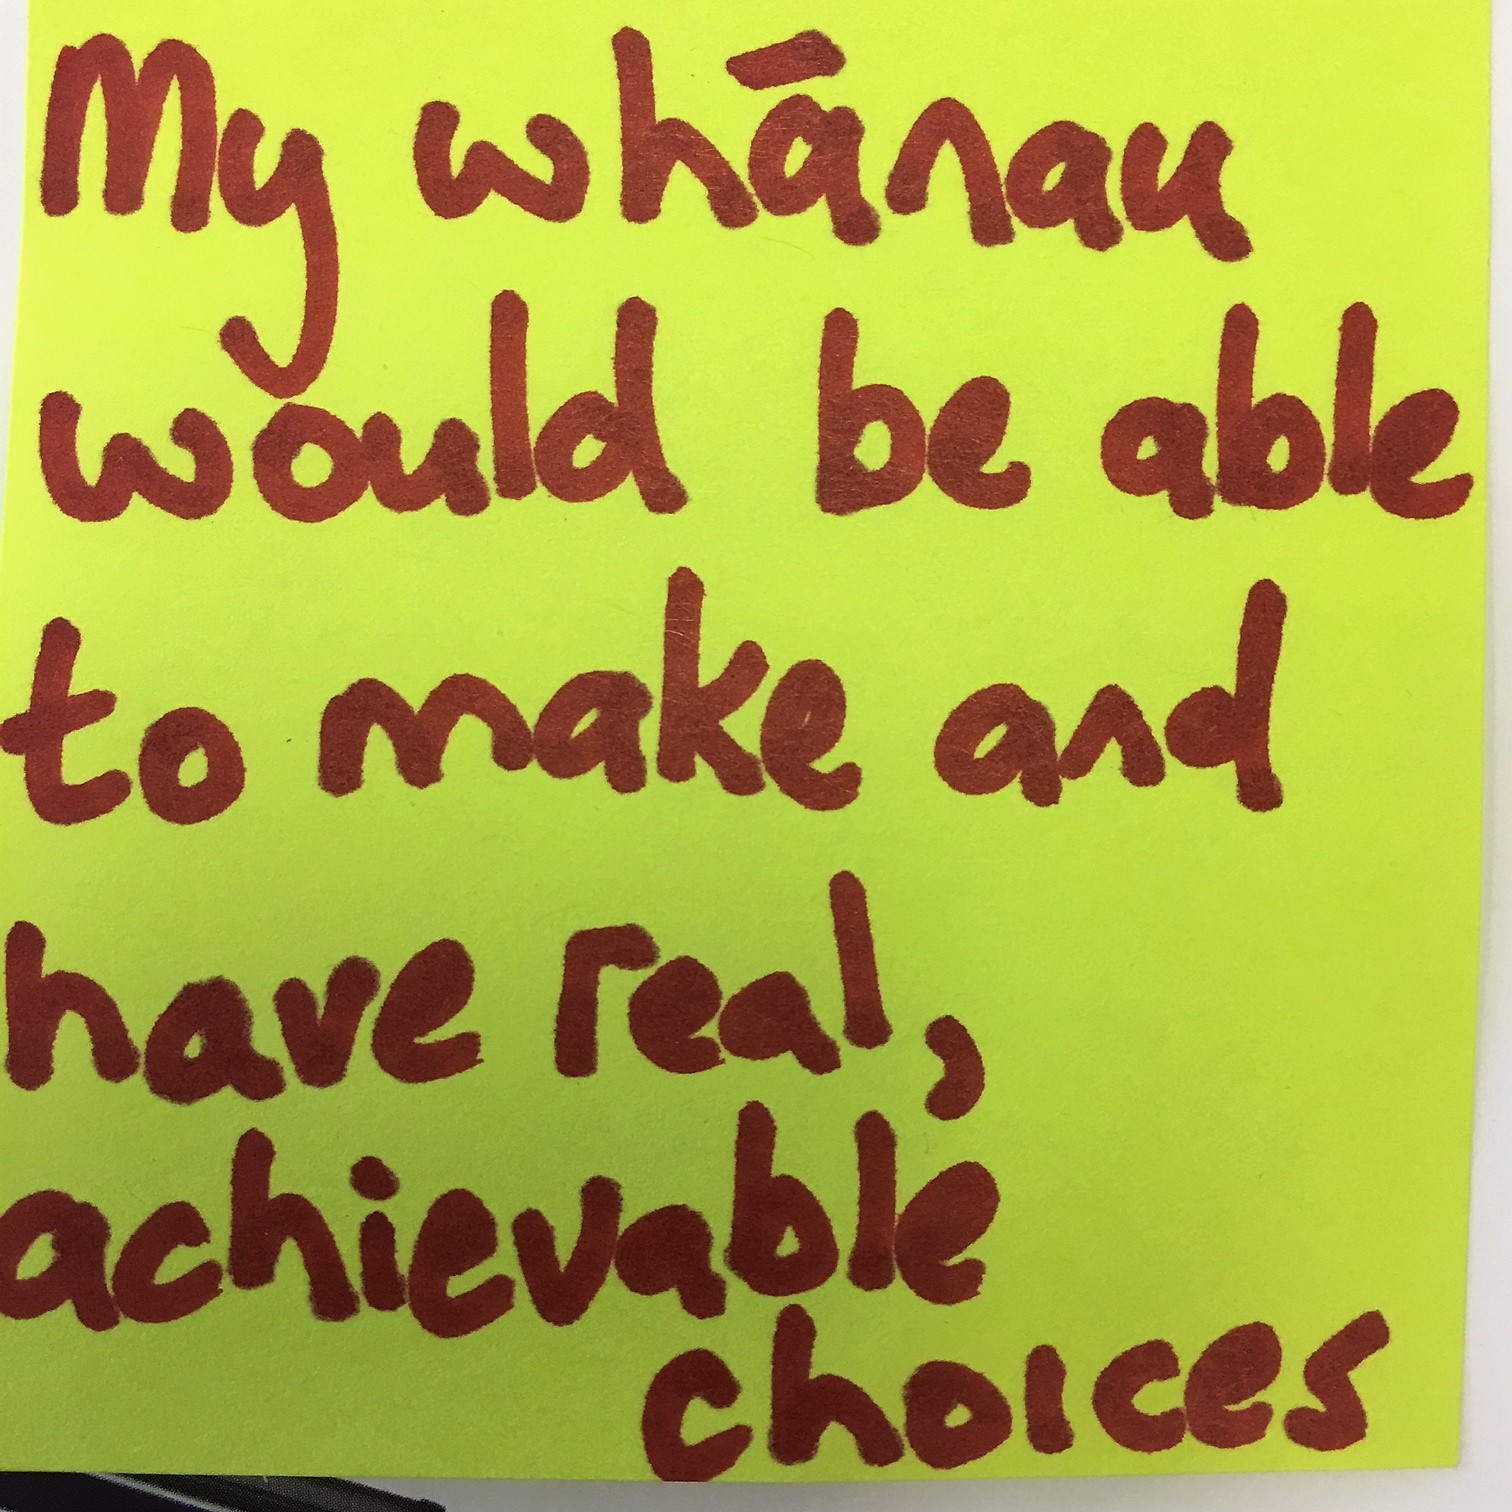 """My whānau would be able to make and have real, achievable choices"""